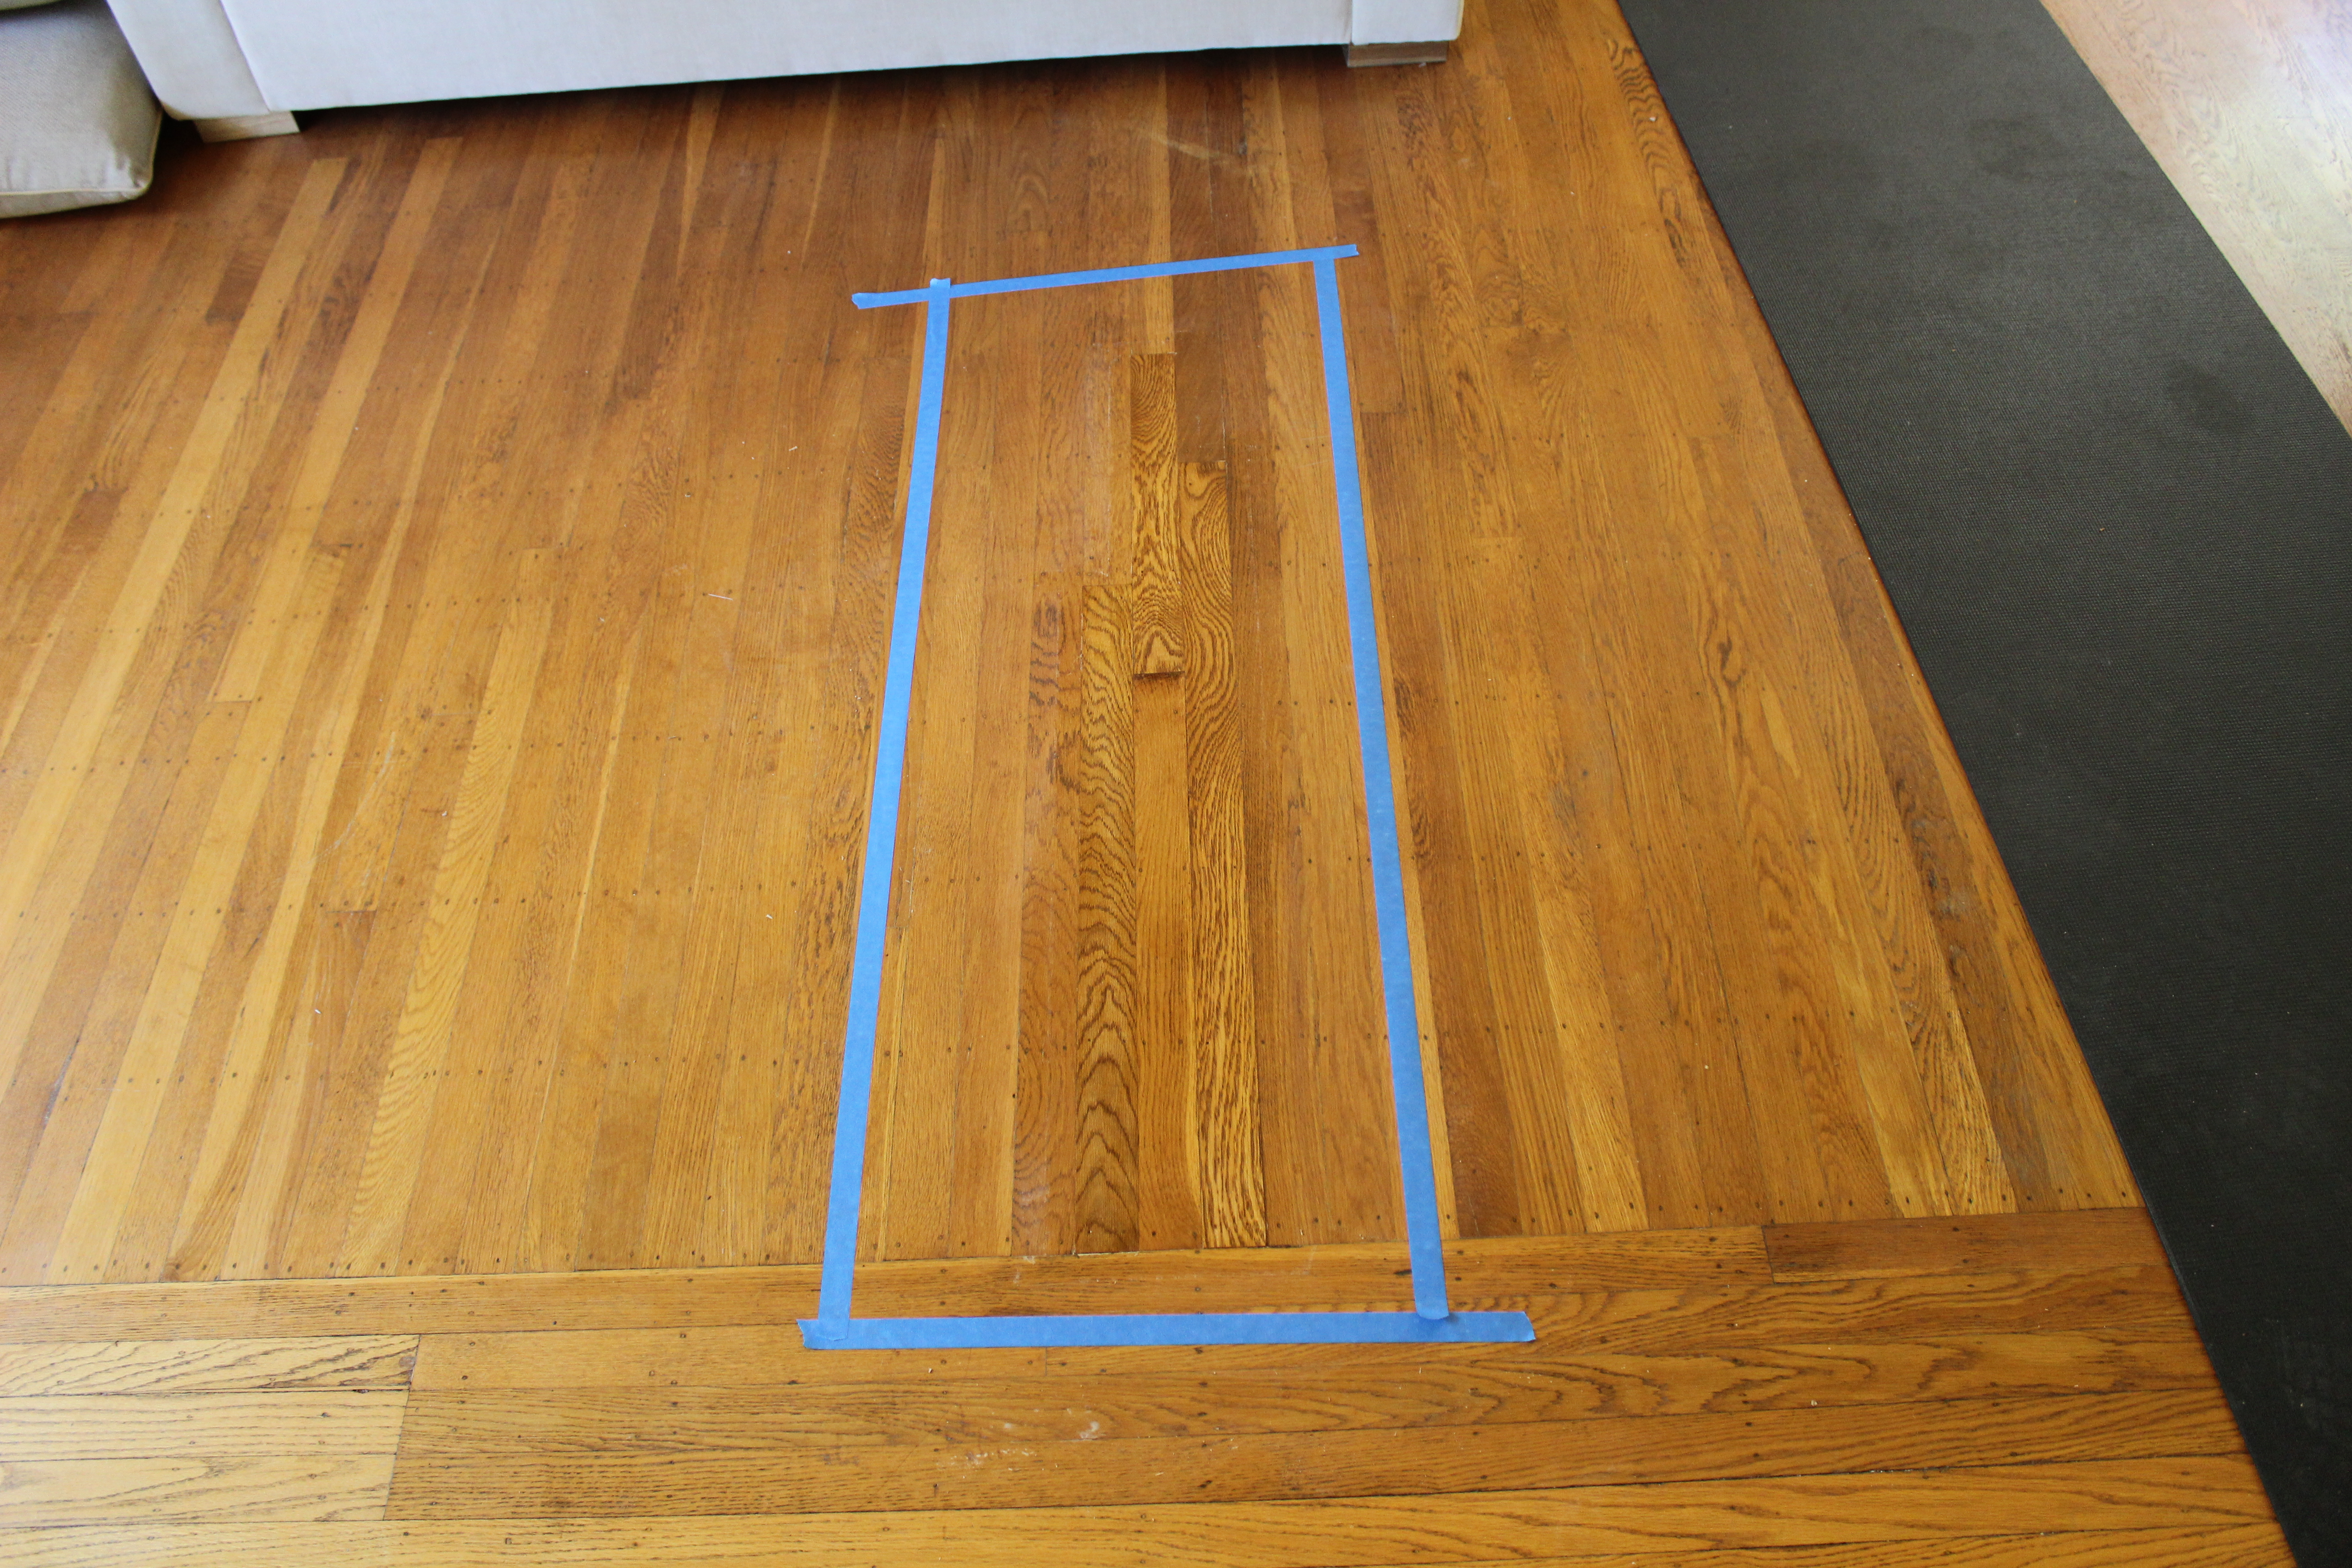 Floor patch meryl and miller llc for Hardwood flooring outlet